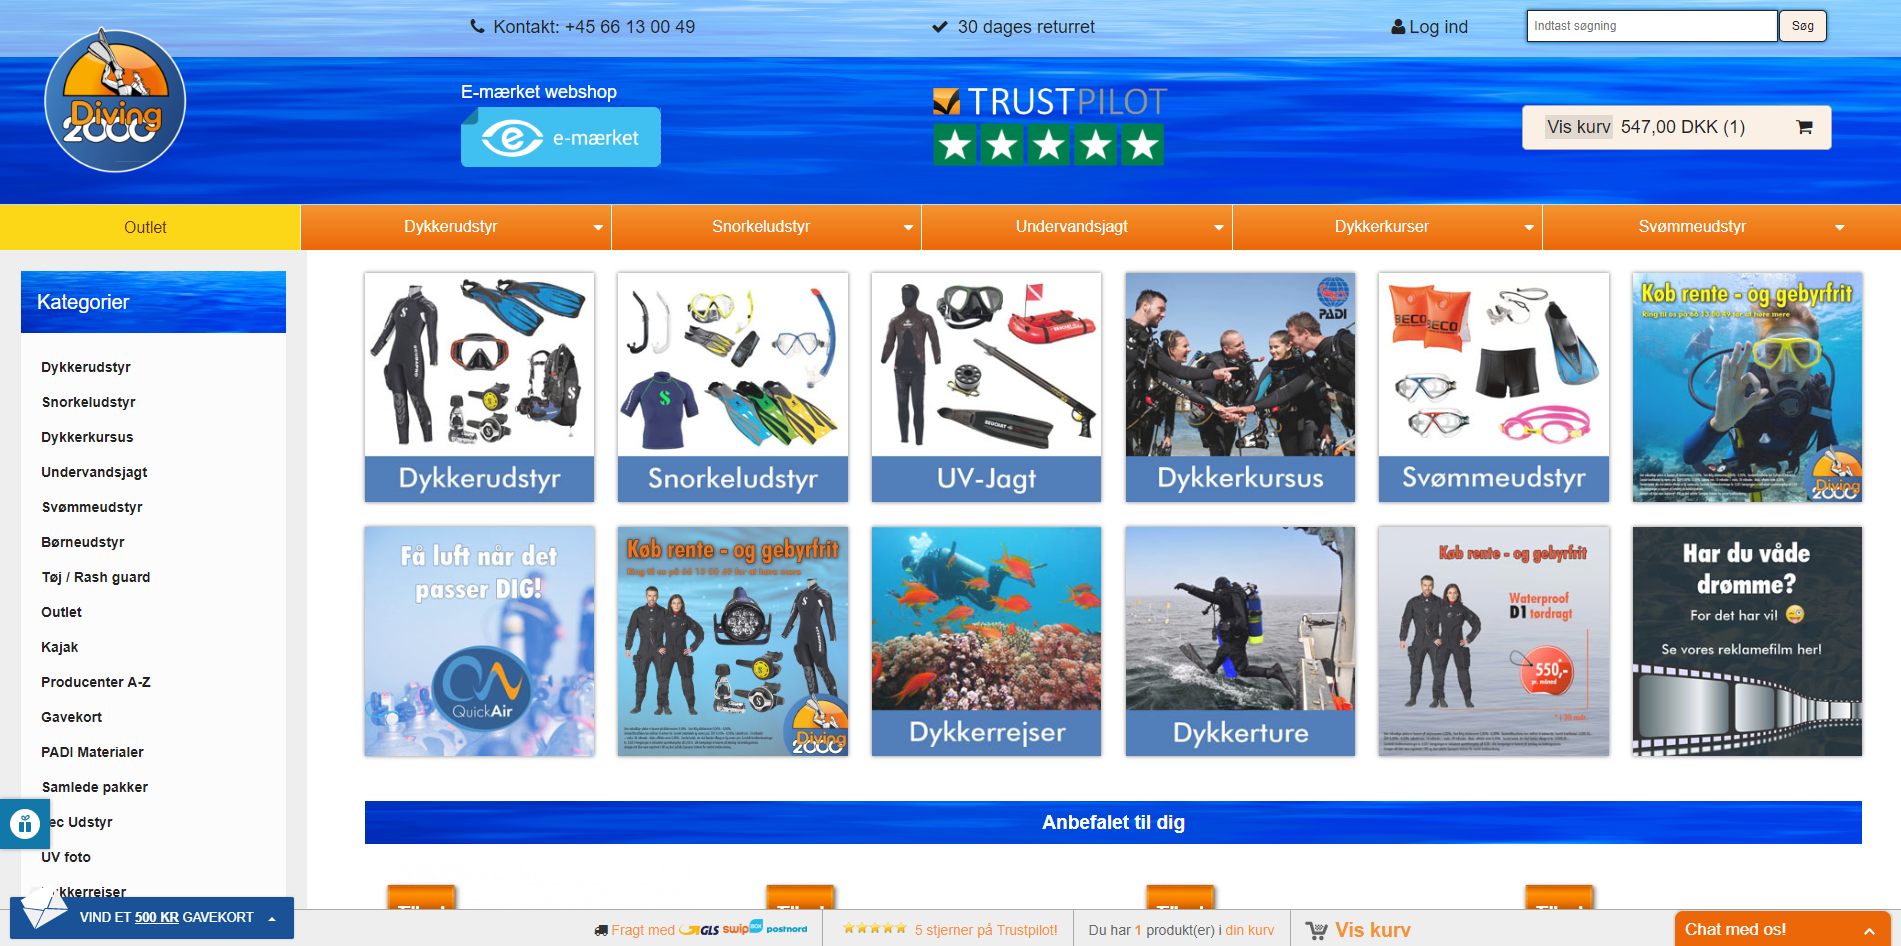 Webshop selling scuba gear as well as snorkeling - and swimgear, courses and trips.